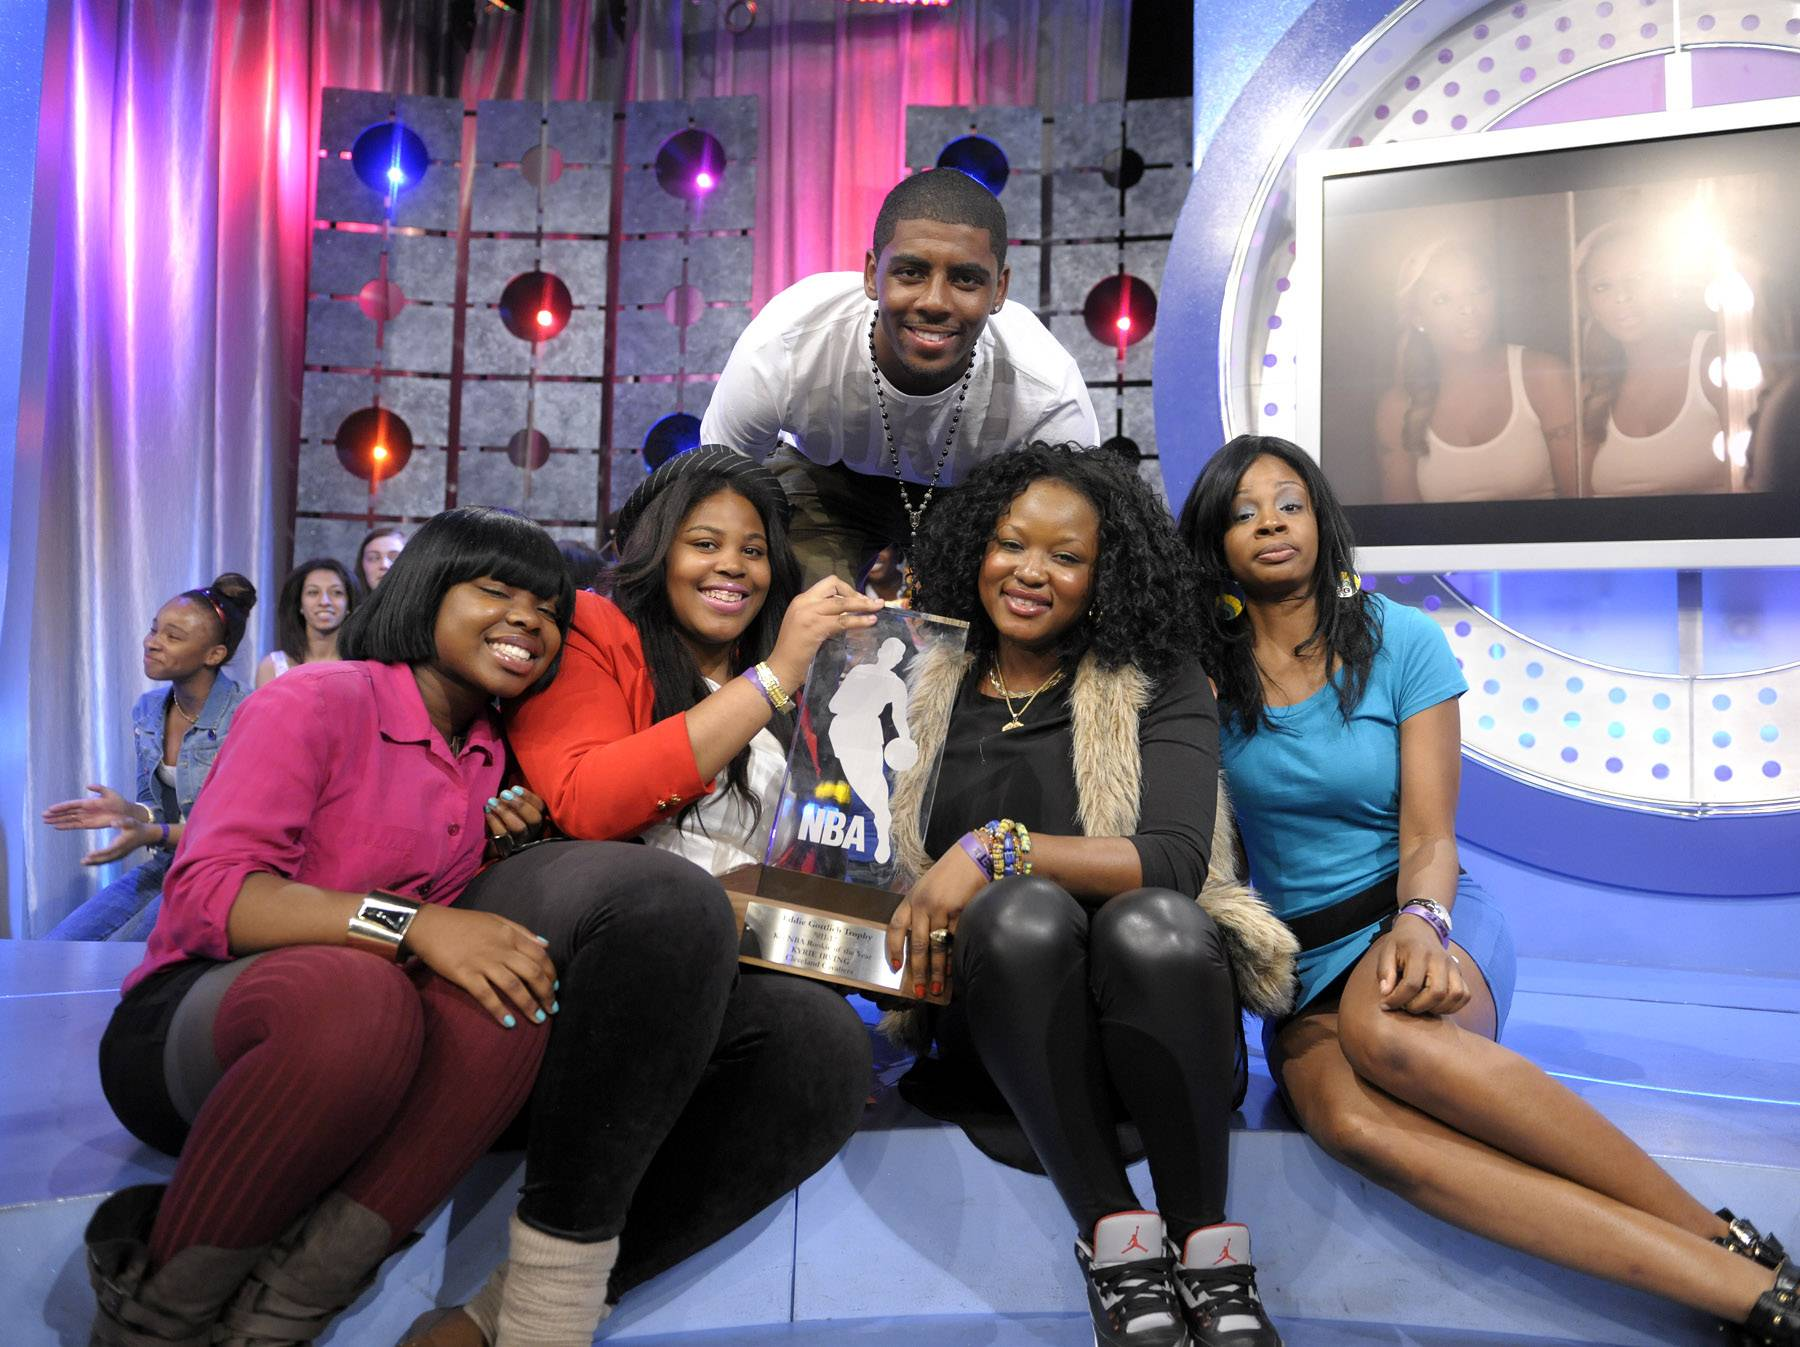 Fans - Kyrie Irving greets audience members at 106 & Park, May 16, 2012. (Photo: John Ricard / BET)